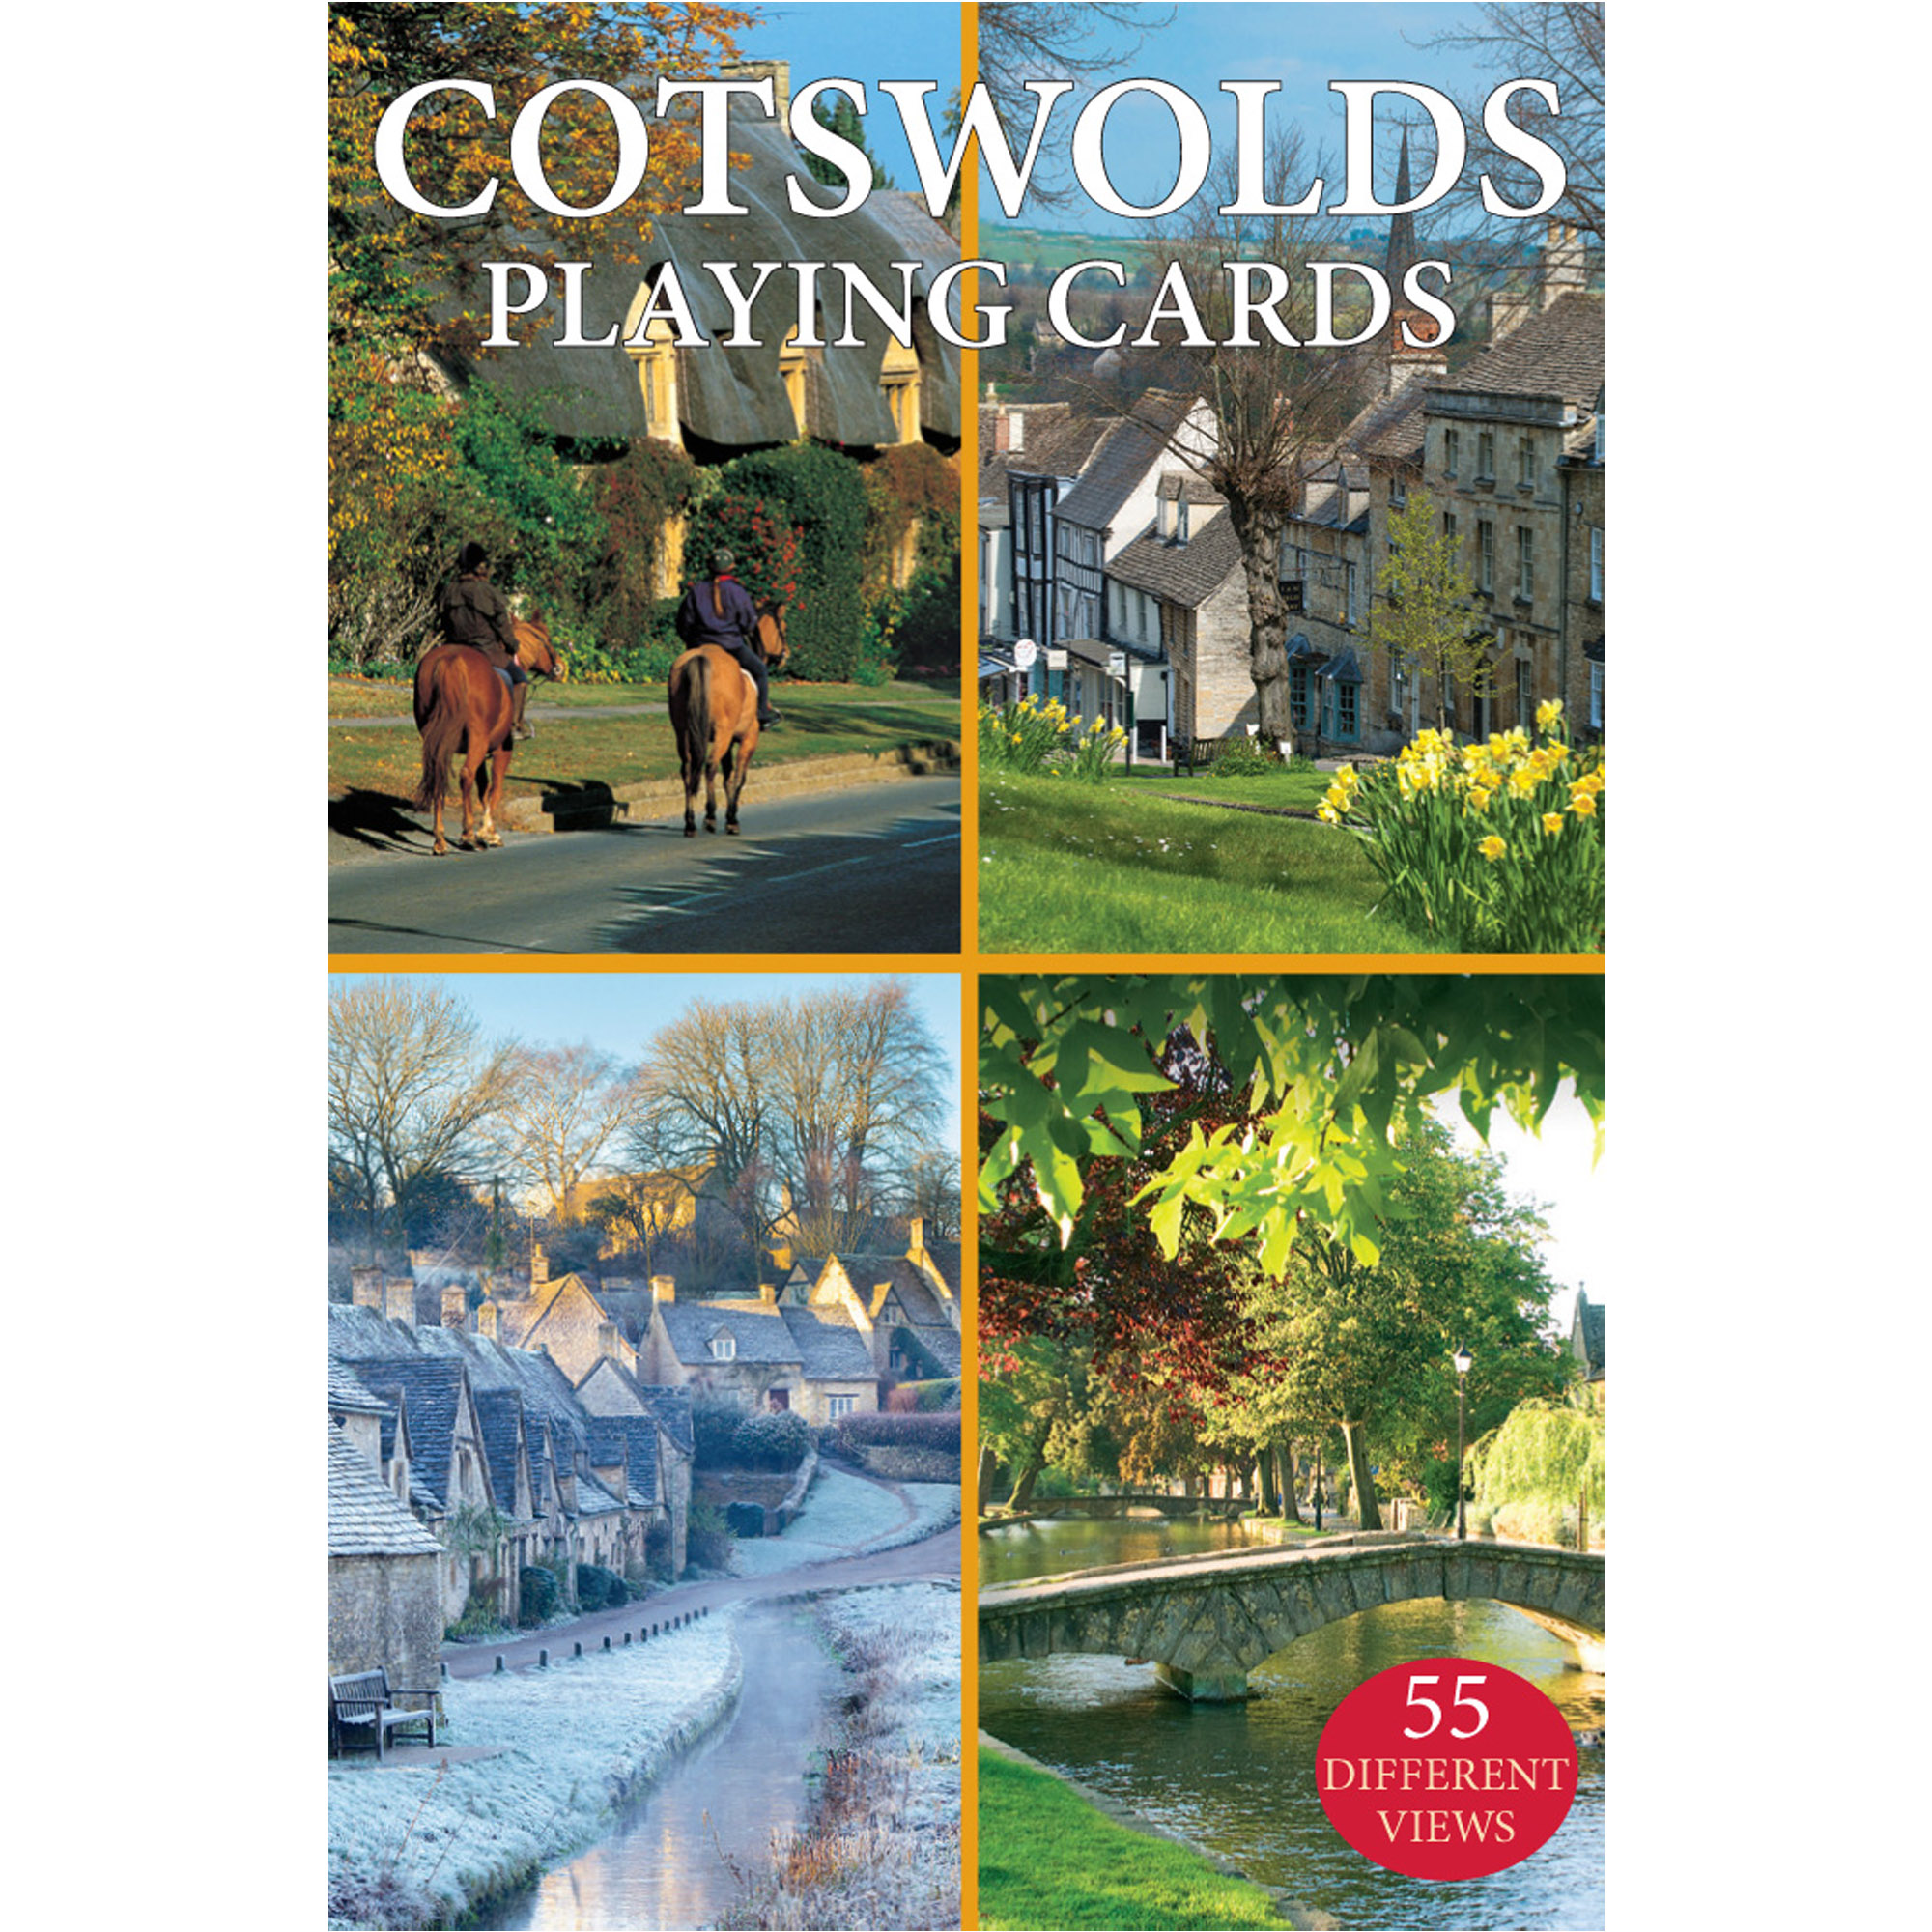 Cotswold Playing Cards